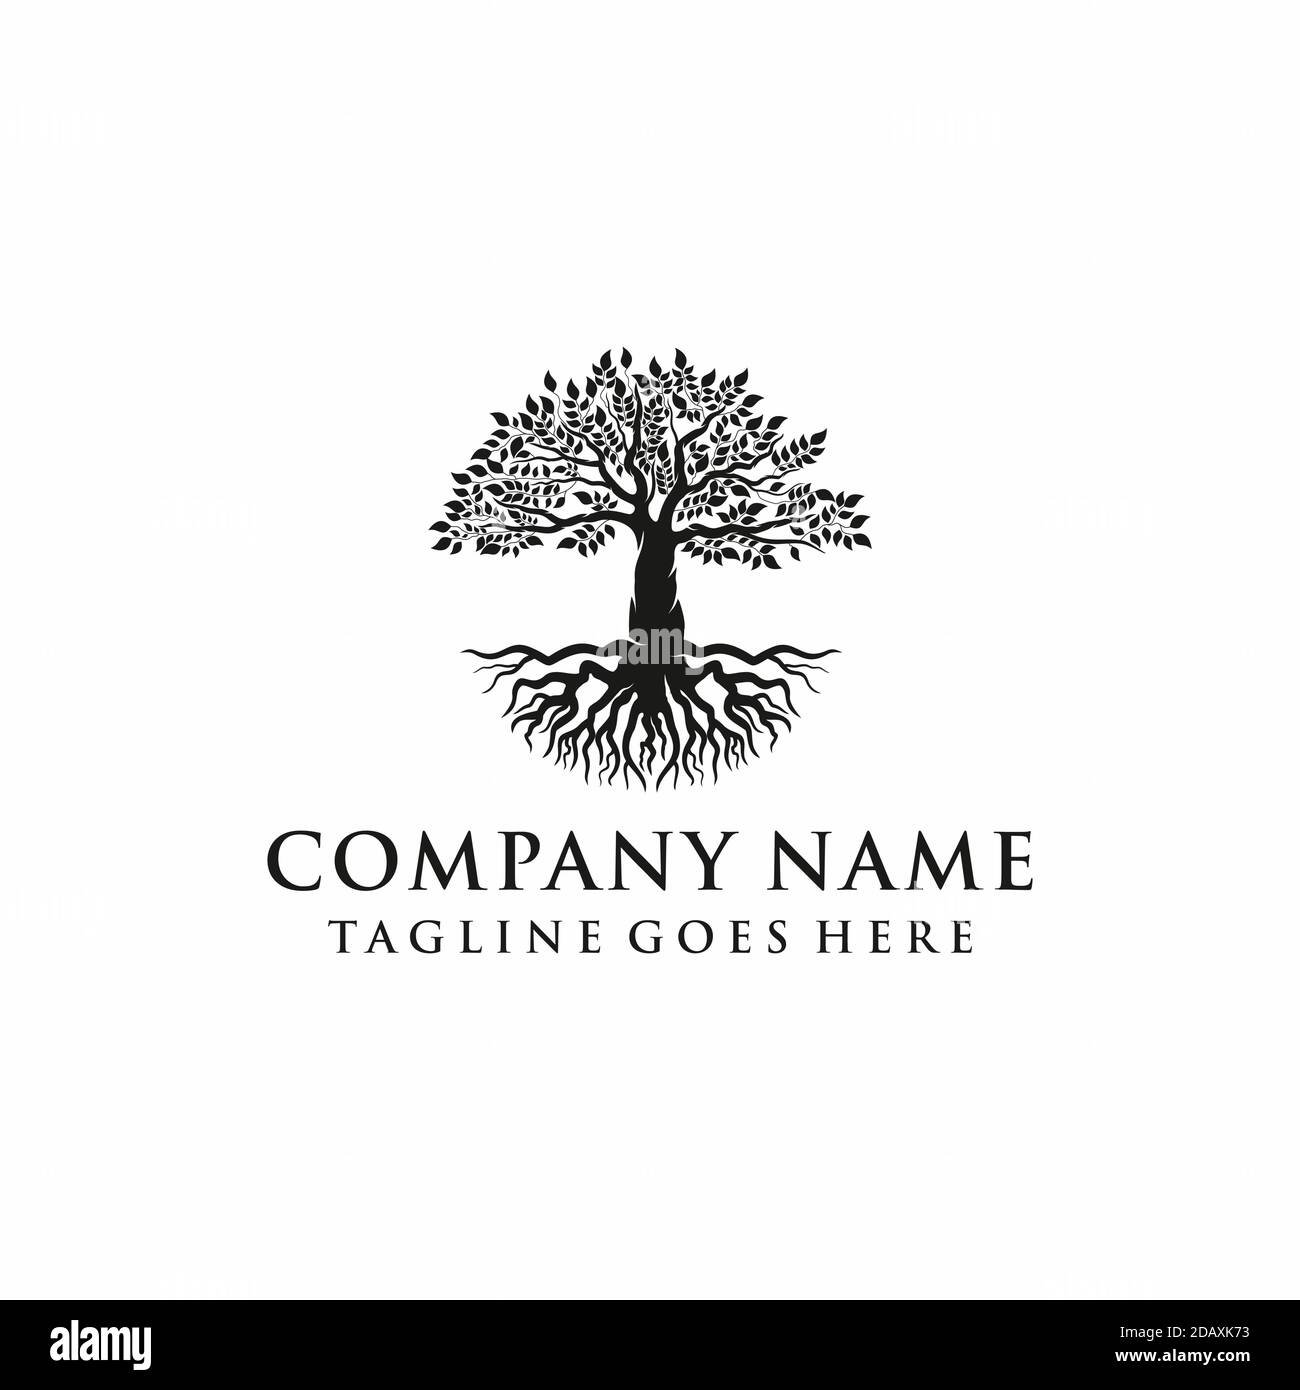 Banyan Tree Logo High Resolution Stock Photography And Images Alamy